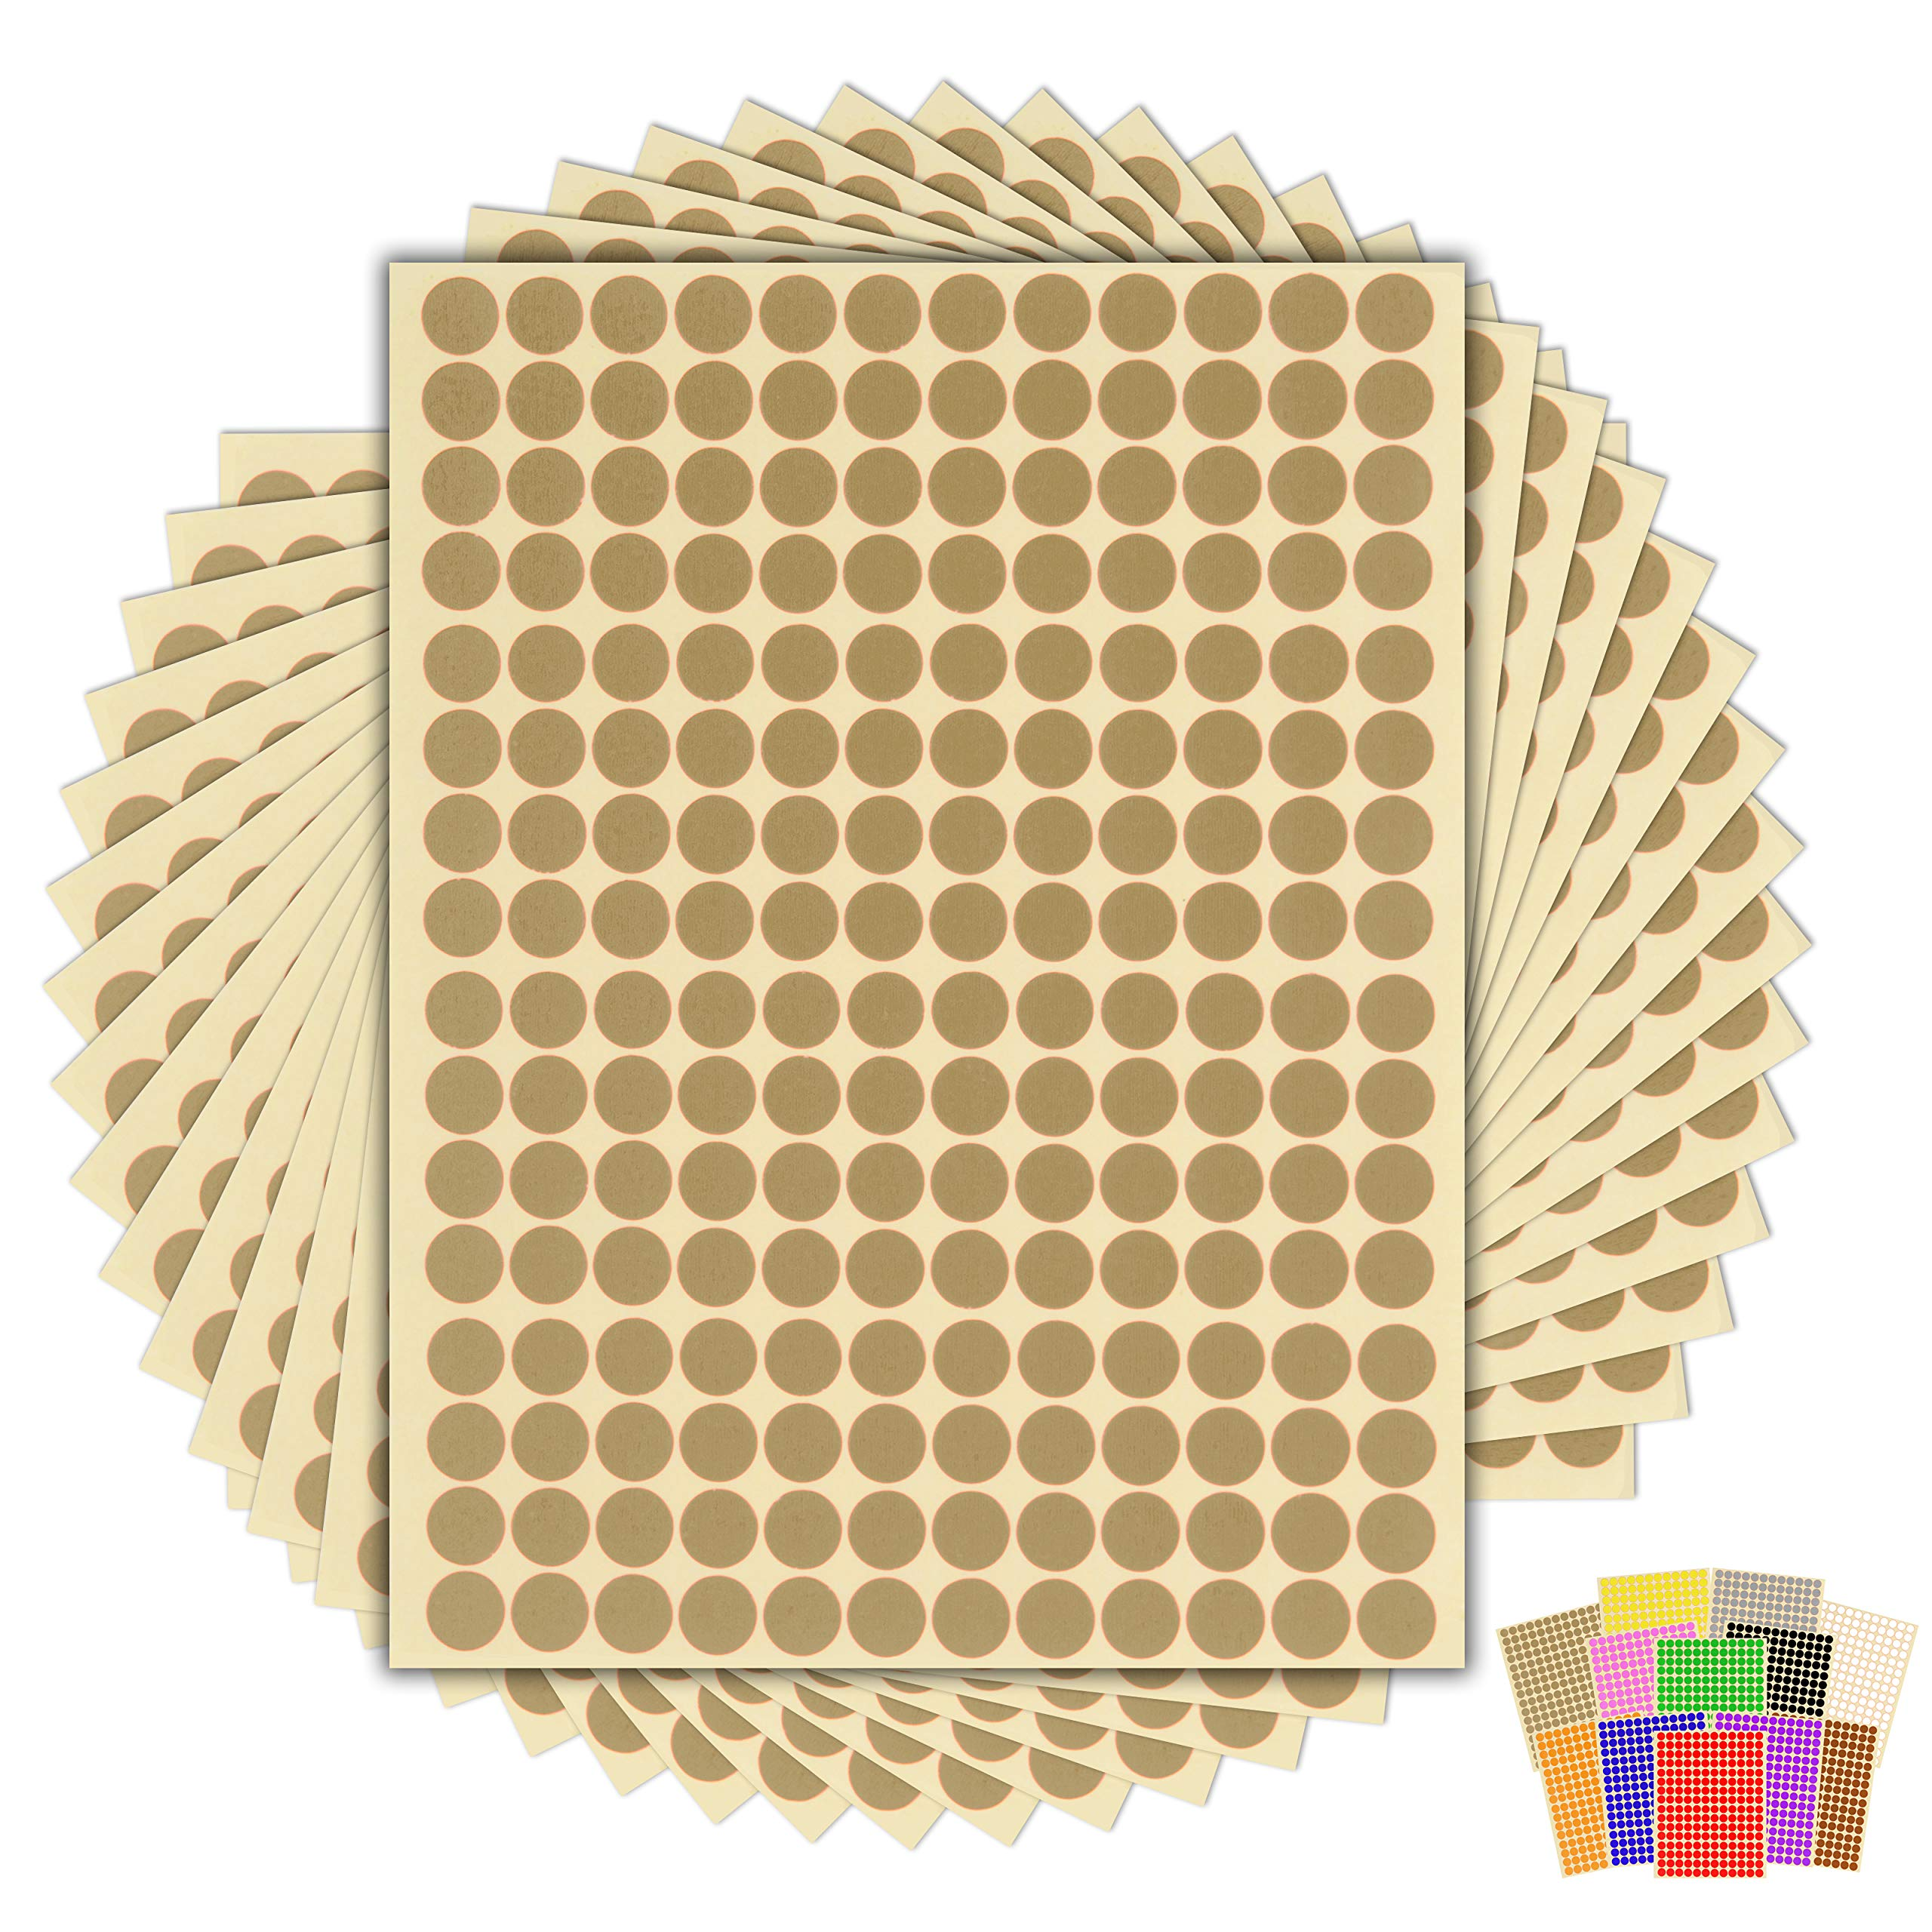 Hot Pink 15 Sheets of High Quality Sticky Dots Best-Selling Pack of 2880 x 10mm Round Coloured Easy Peel Self Adhesive Dot Stickers for Colour Coding Calendars Choice of 13 Colours